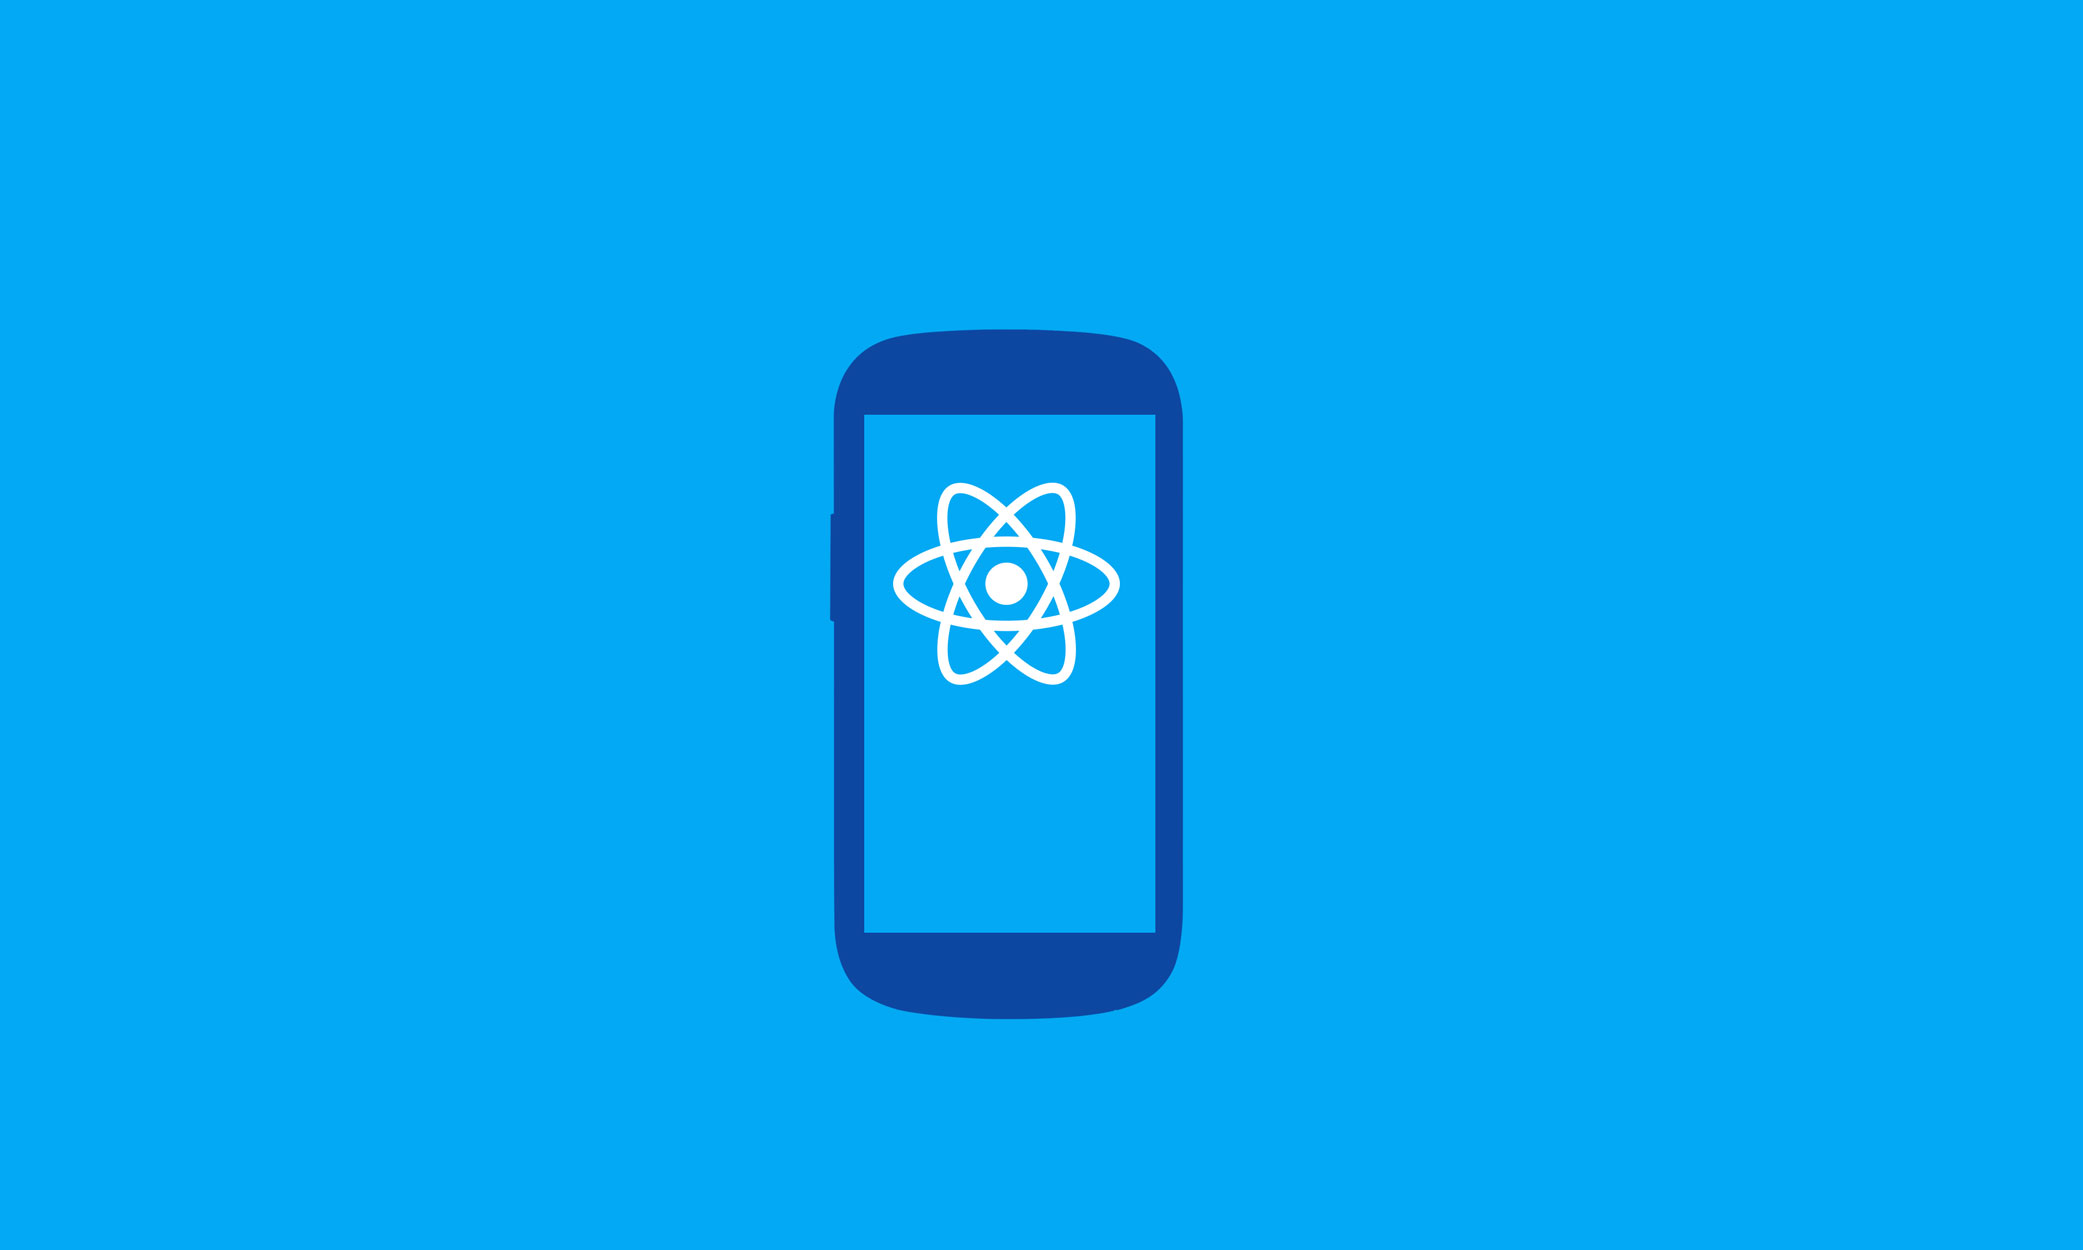 Making React Native apps accessible - Facebook Code